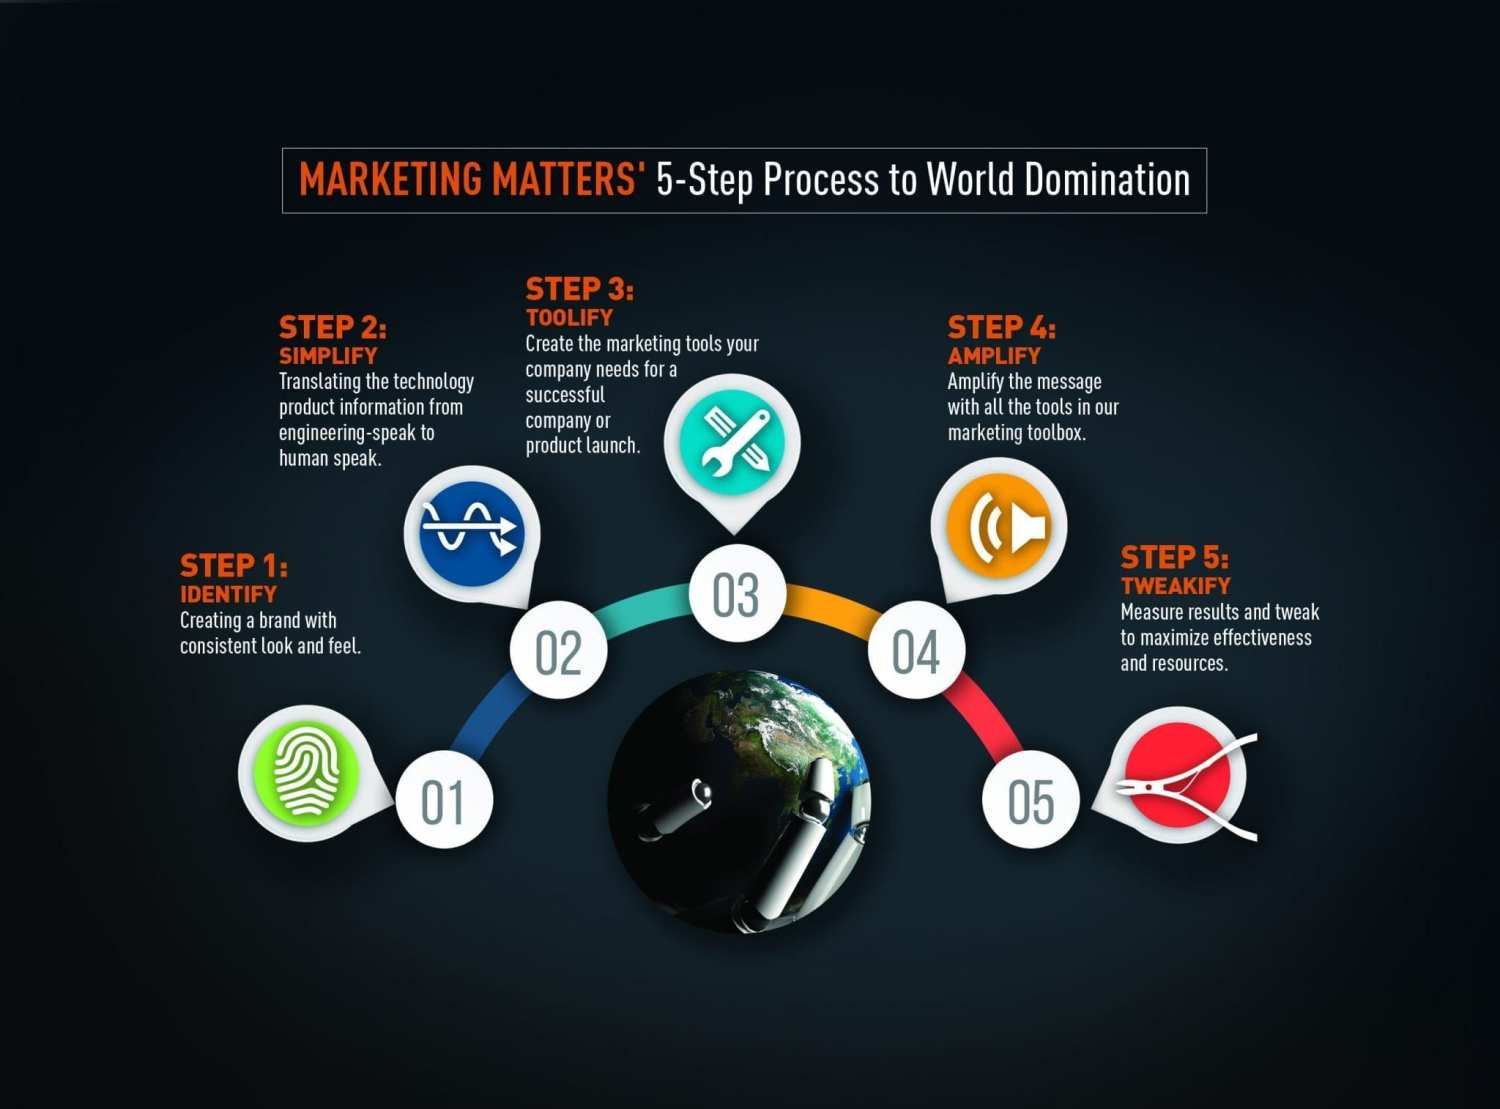 Marketing Matters chart